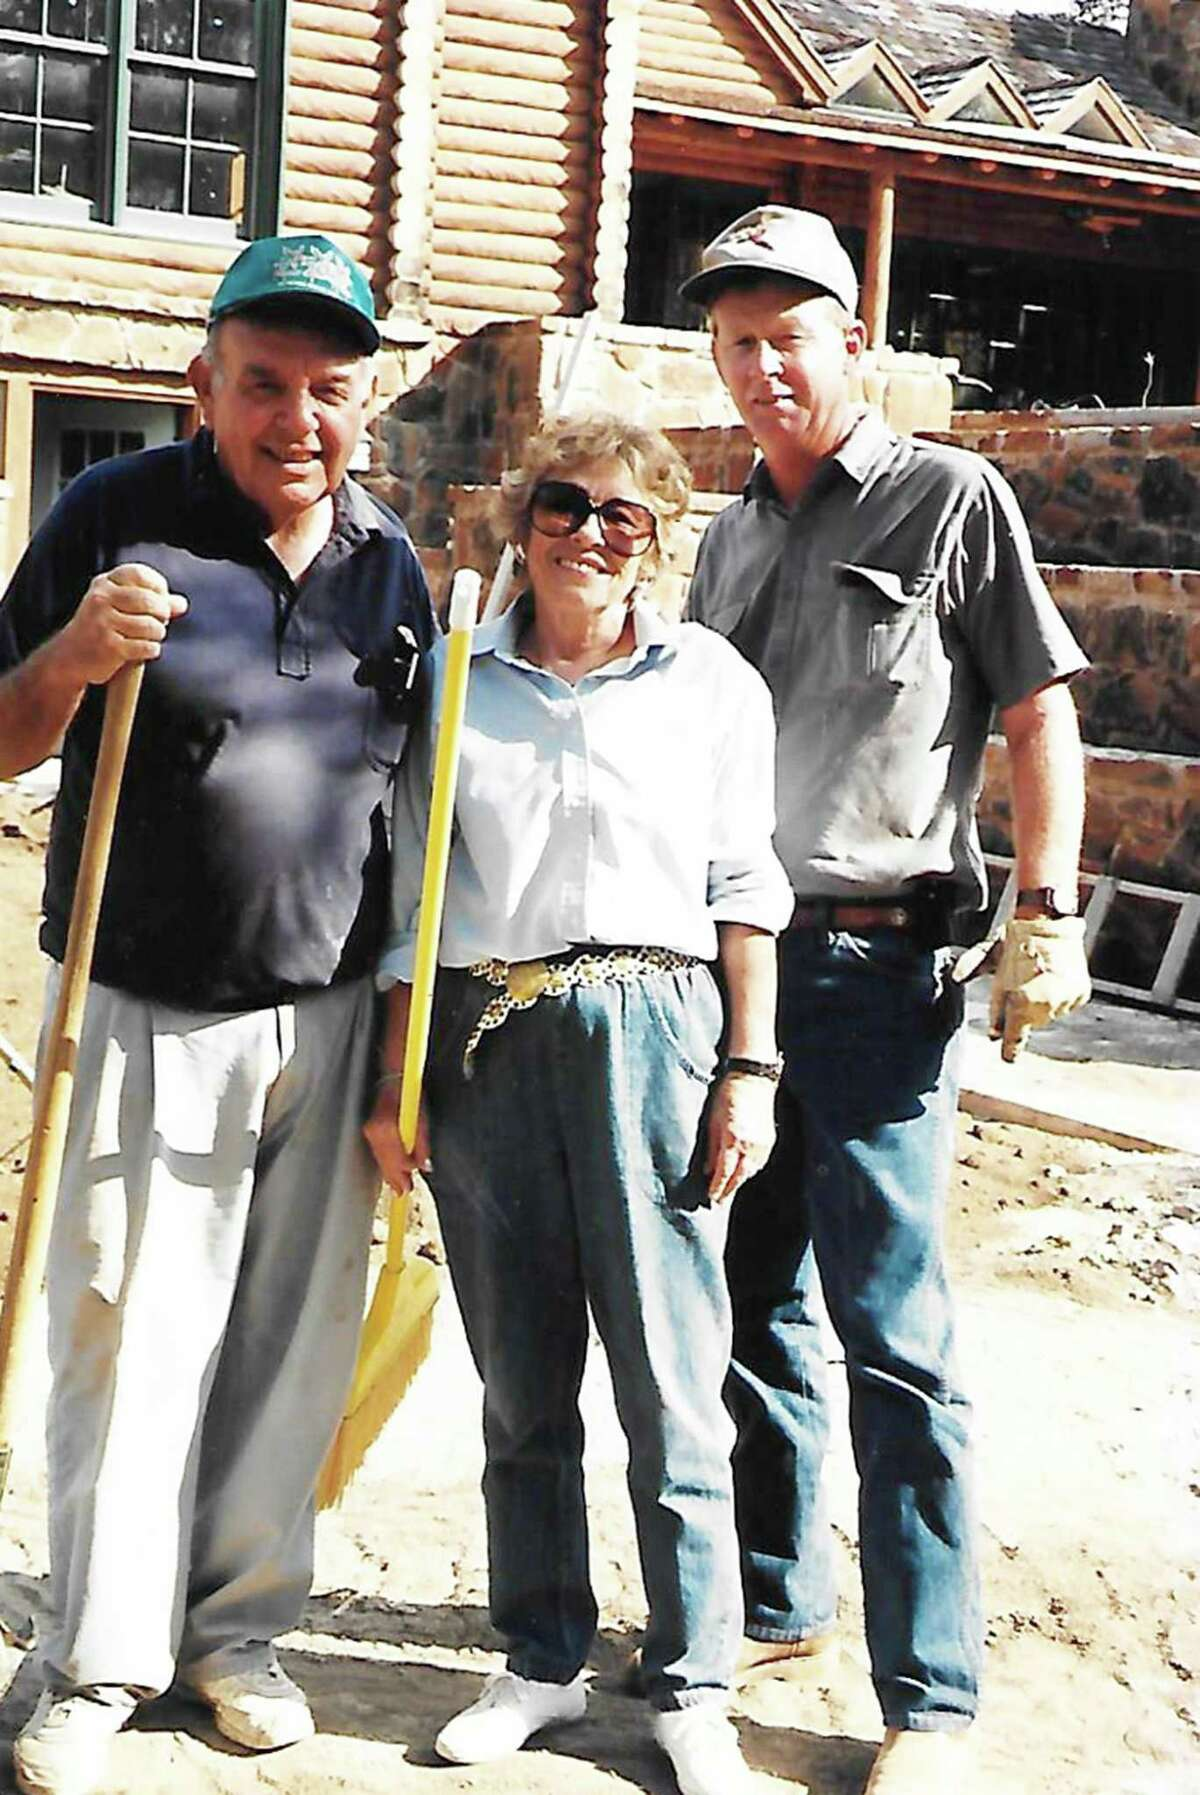 Lynn Moody, right, who died Dec. 31, 2019, is pictured with his stepfather Felix Stehling and his mother Billie Joe Stehling at the family's river house. The photo is believed to have been taken in the early 2000s.